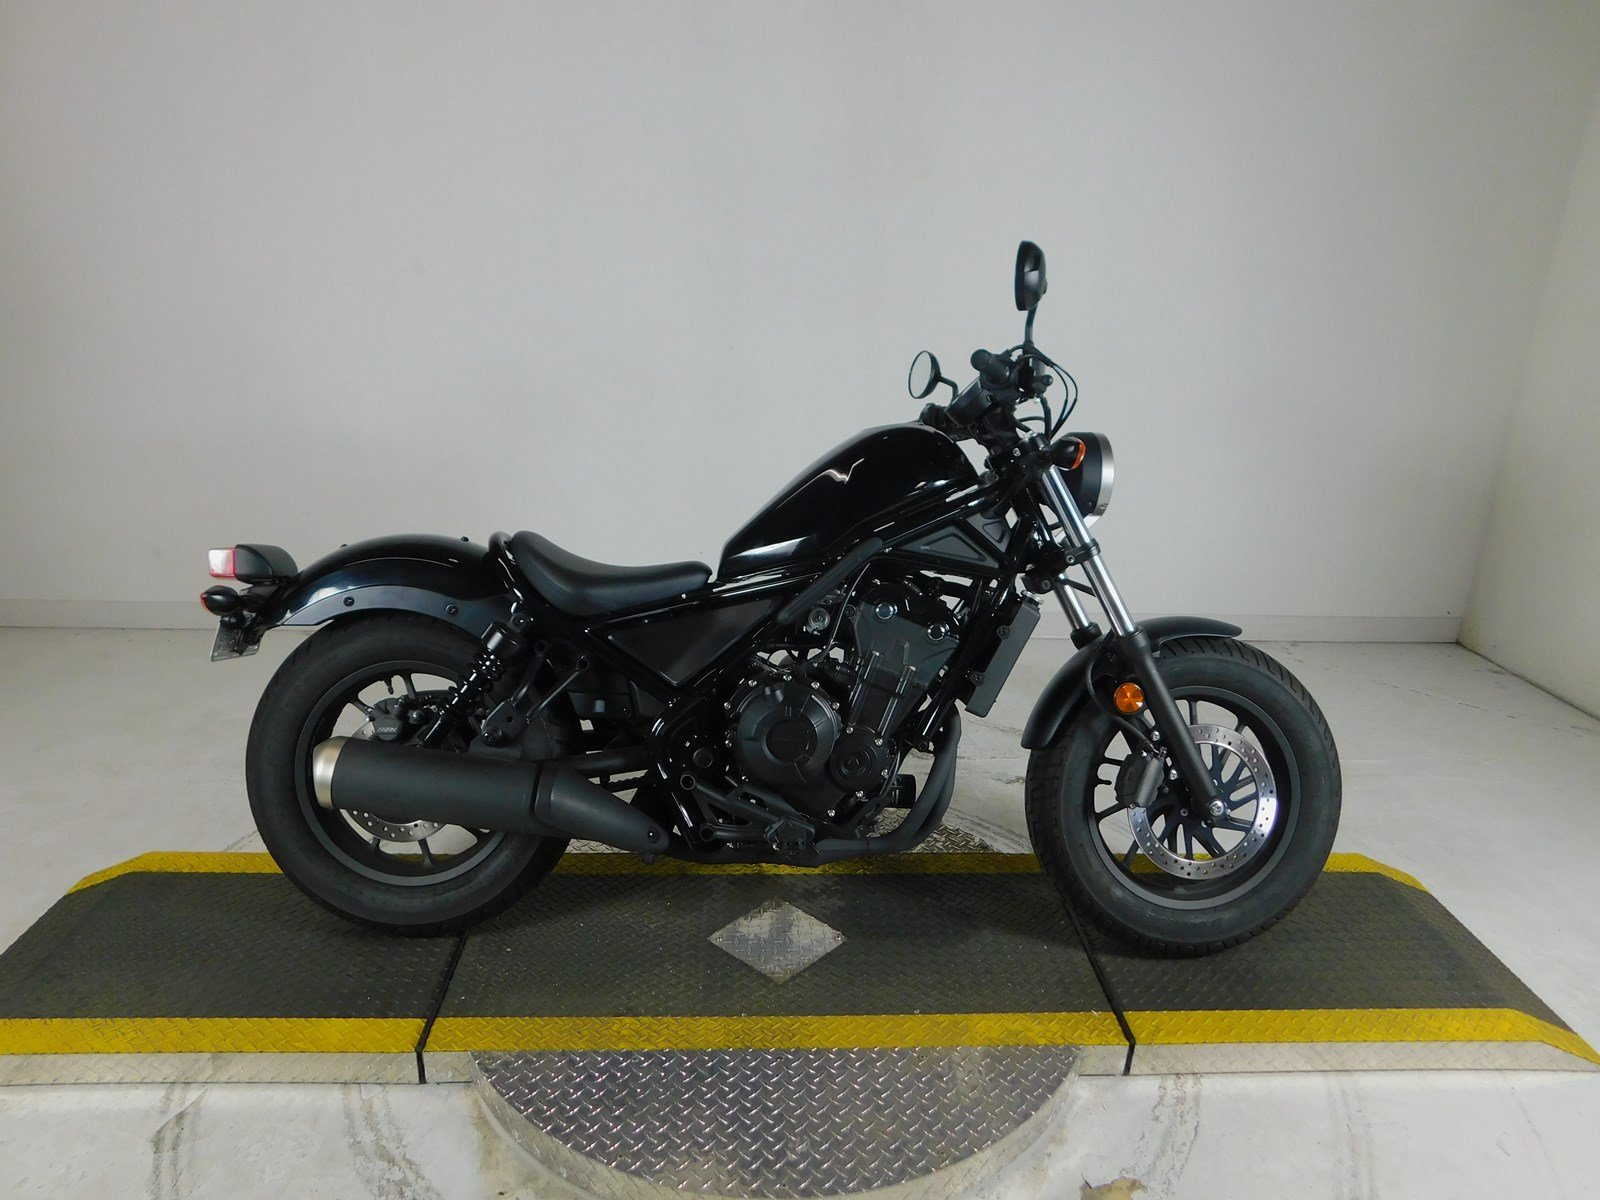 pre owned 2017 honda rebel cmx500 cruiser in westminster u5000092 huntington beach harley. Black Bedroom Furniture Sets. Home Design Ideas